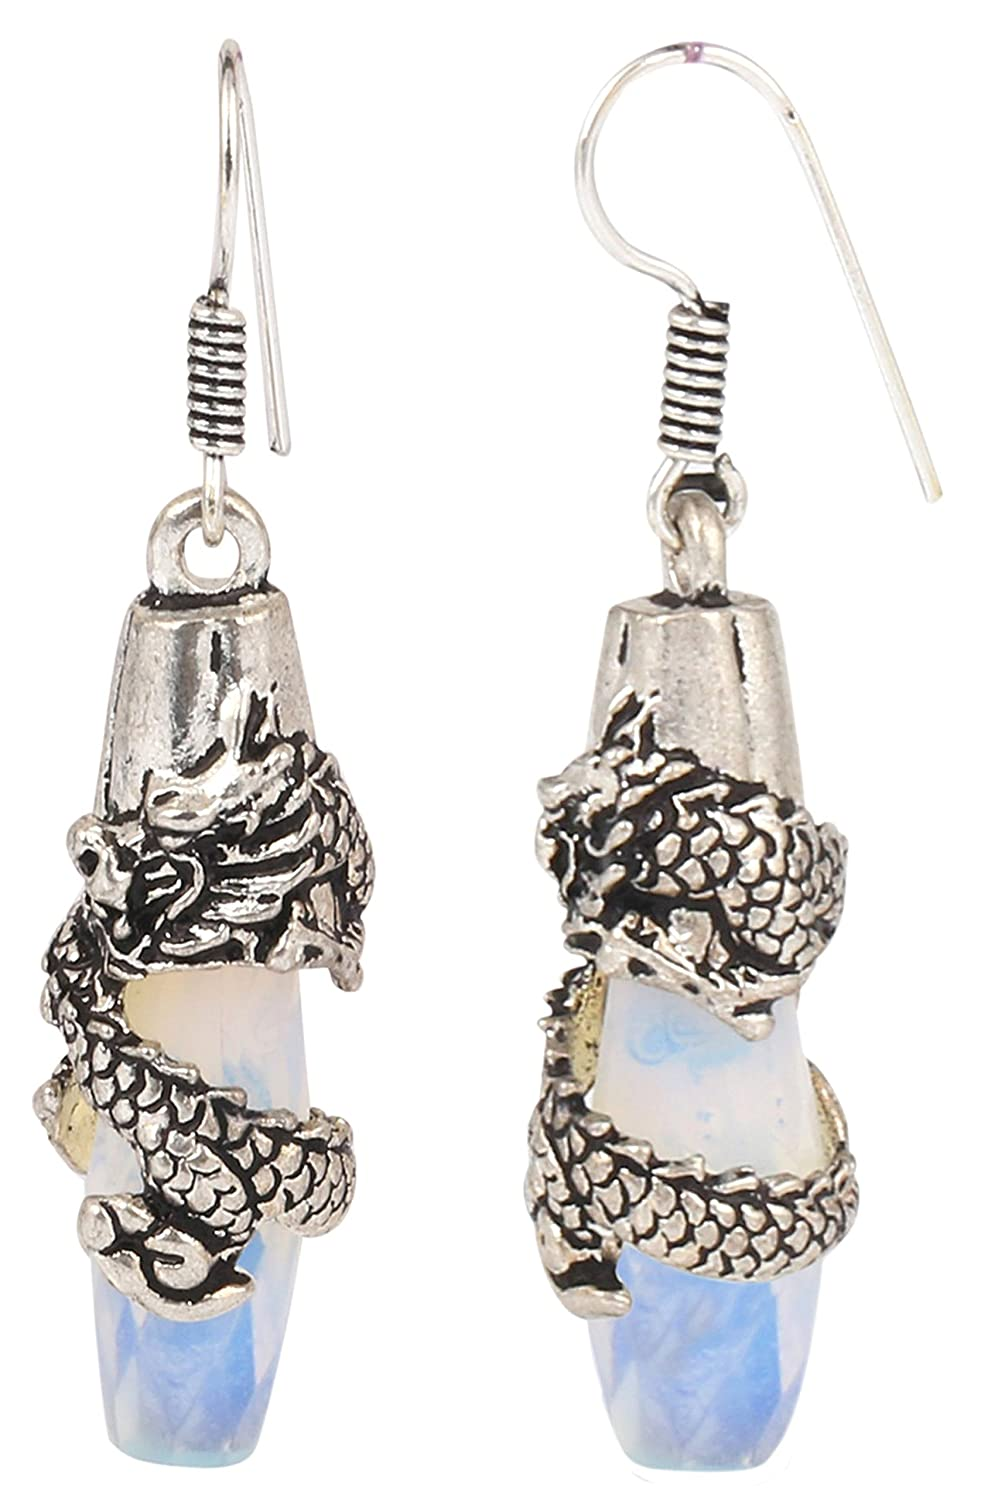 Sansar India Silver Plated Dragon Moonstone Drop Bohemian Indian Earrings Jewelry for Girls and Women